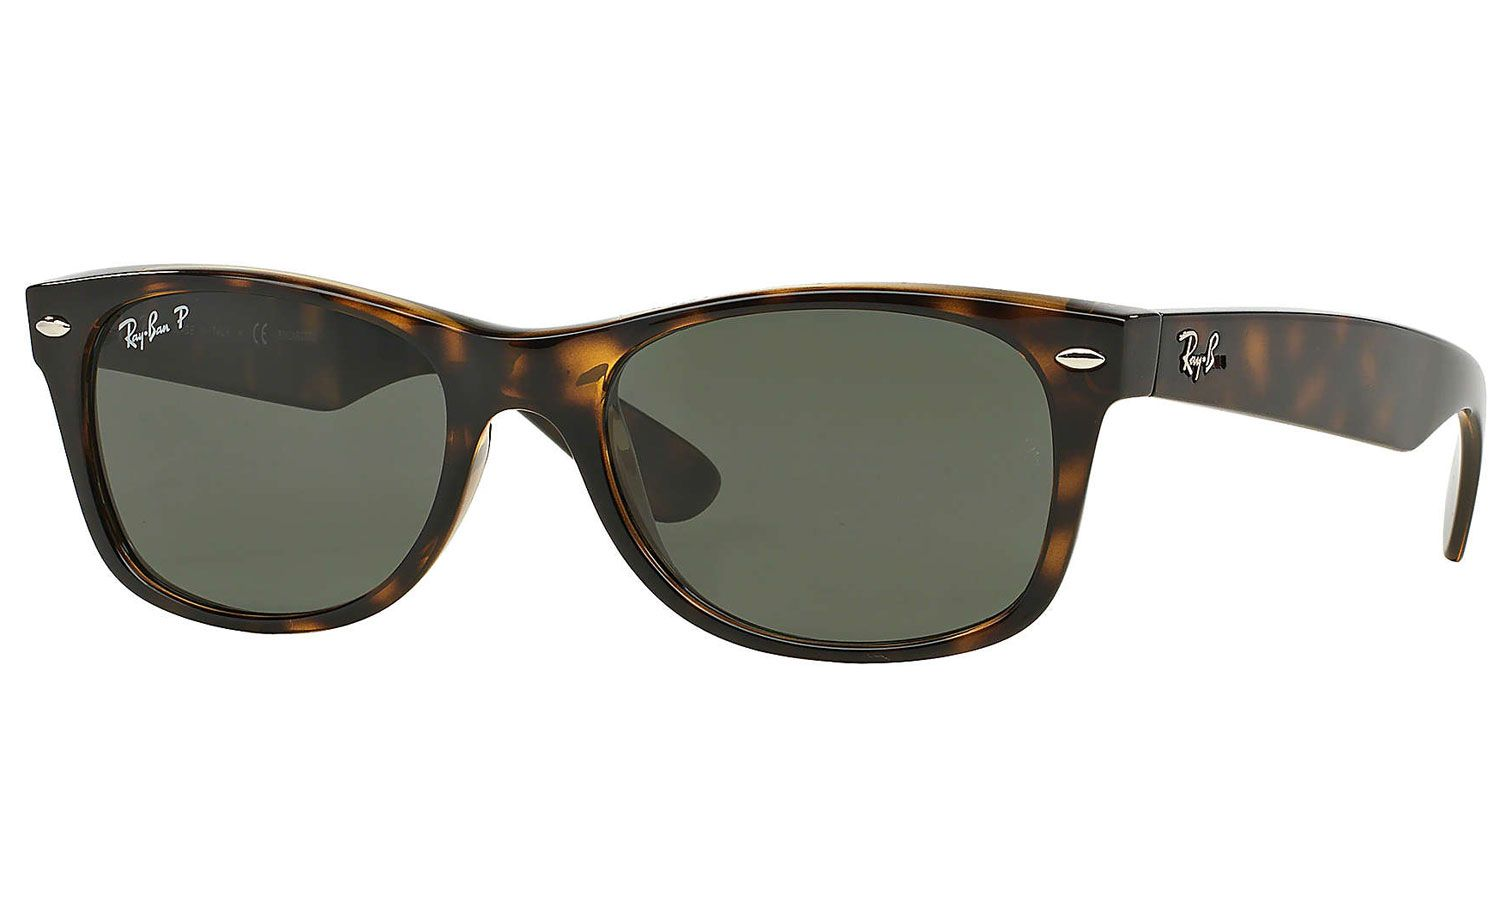 9267800a89c Fit Over Sunglasses Ray Ban « Heritage Malta